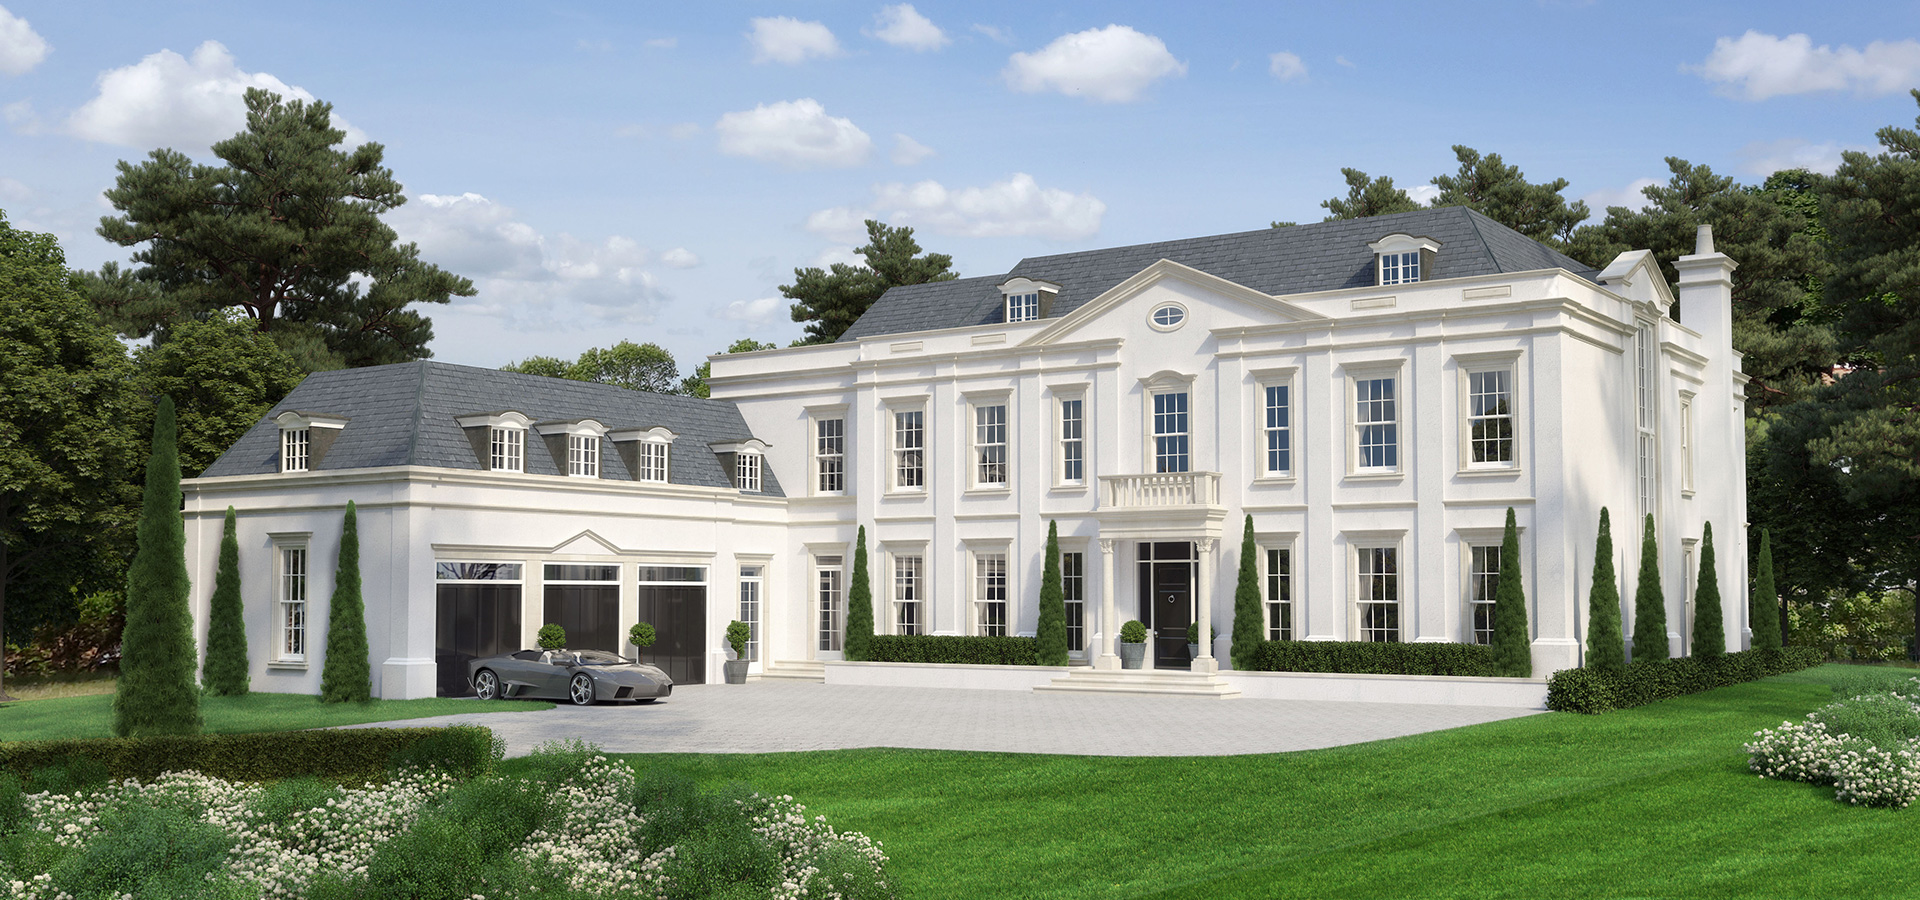 6 Bed Luxury Bespoke Property Weybridge Surrey Hillside